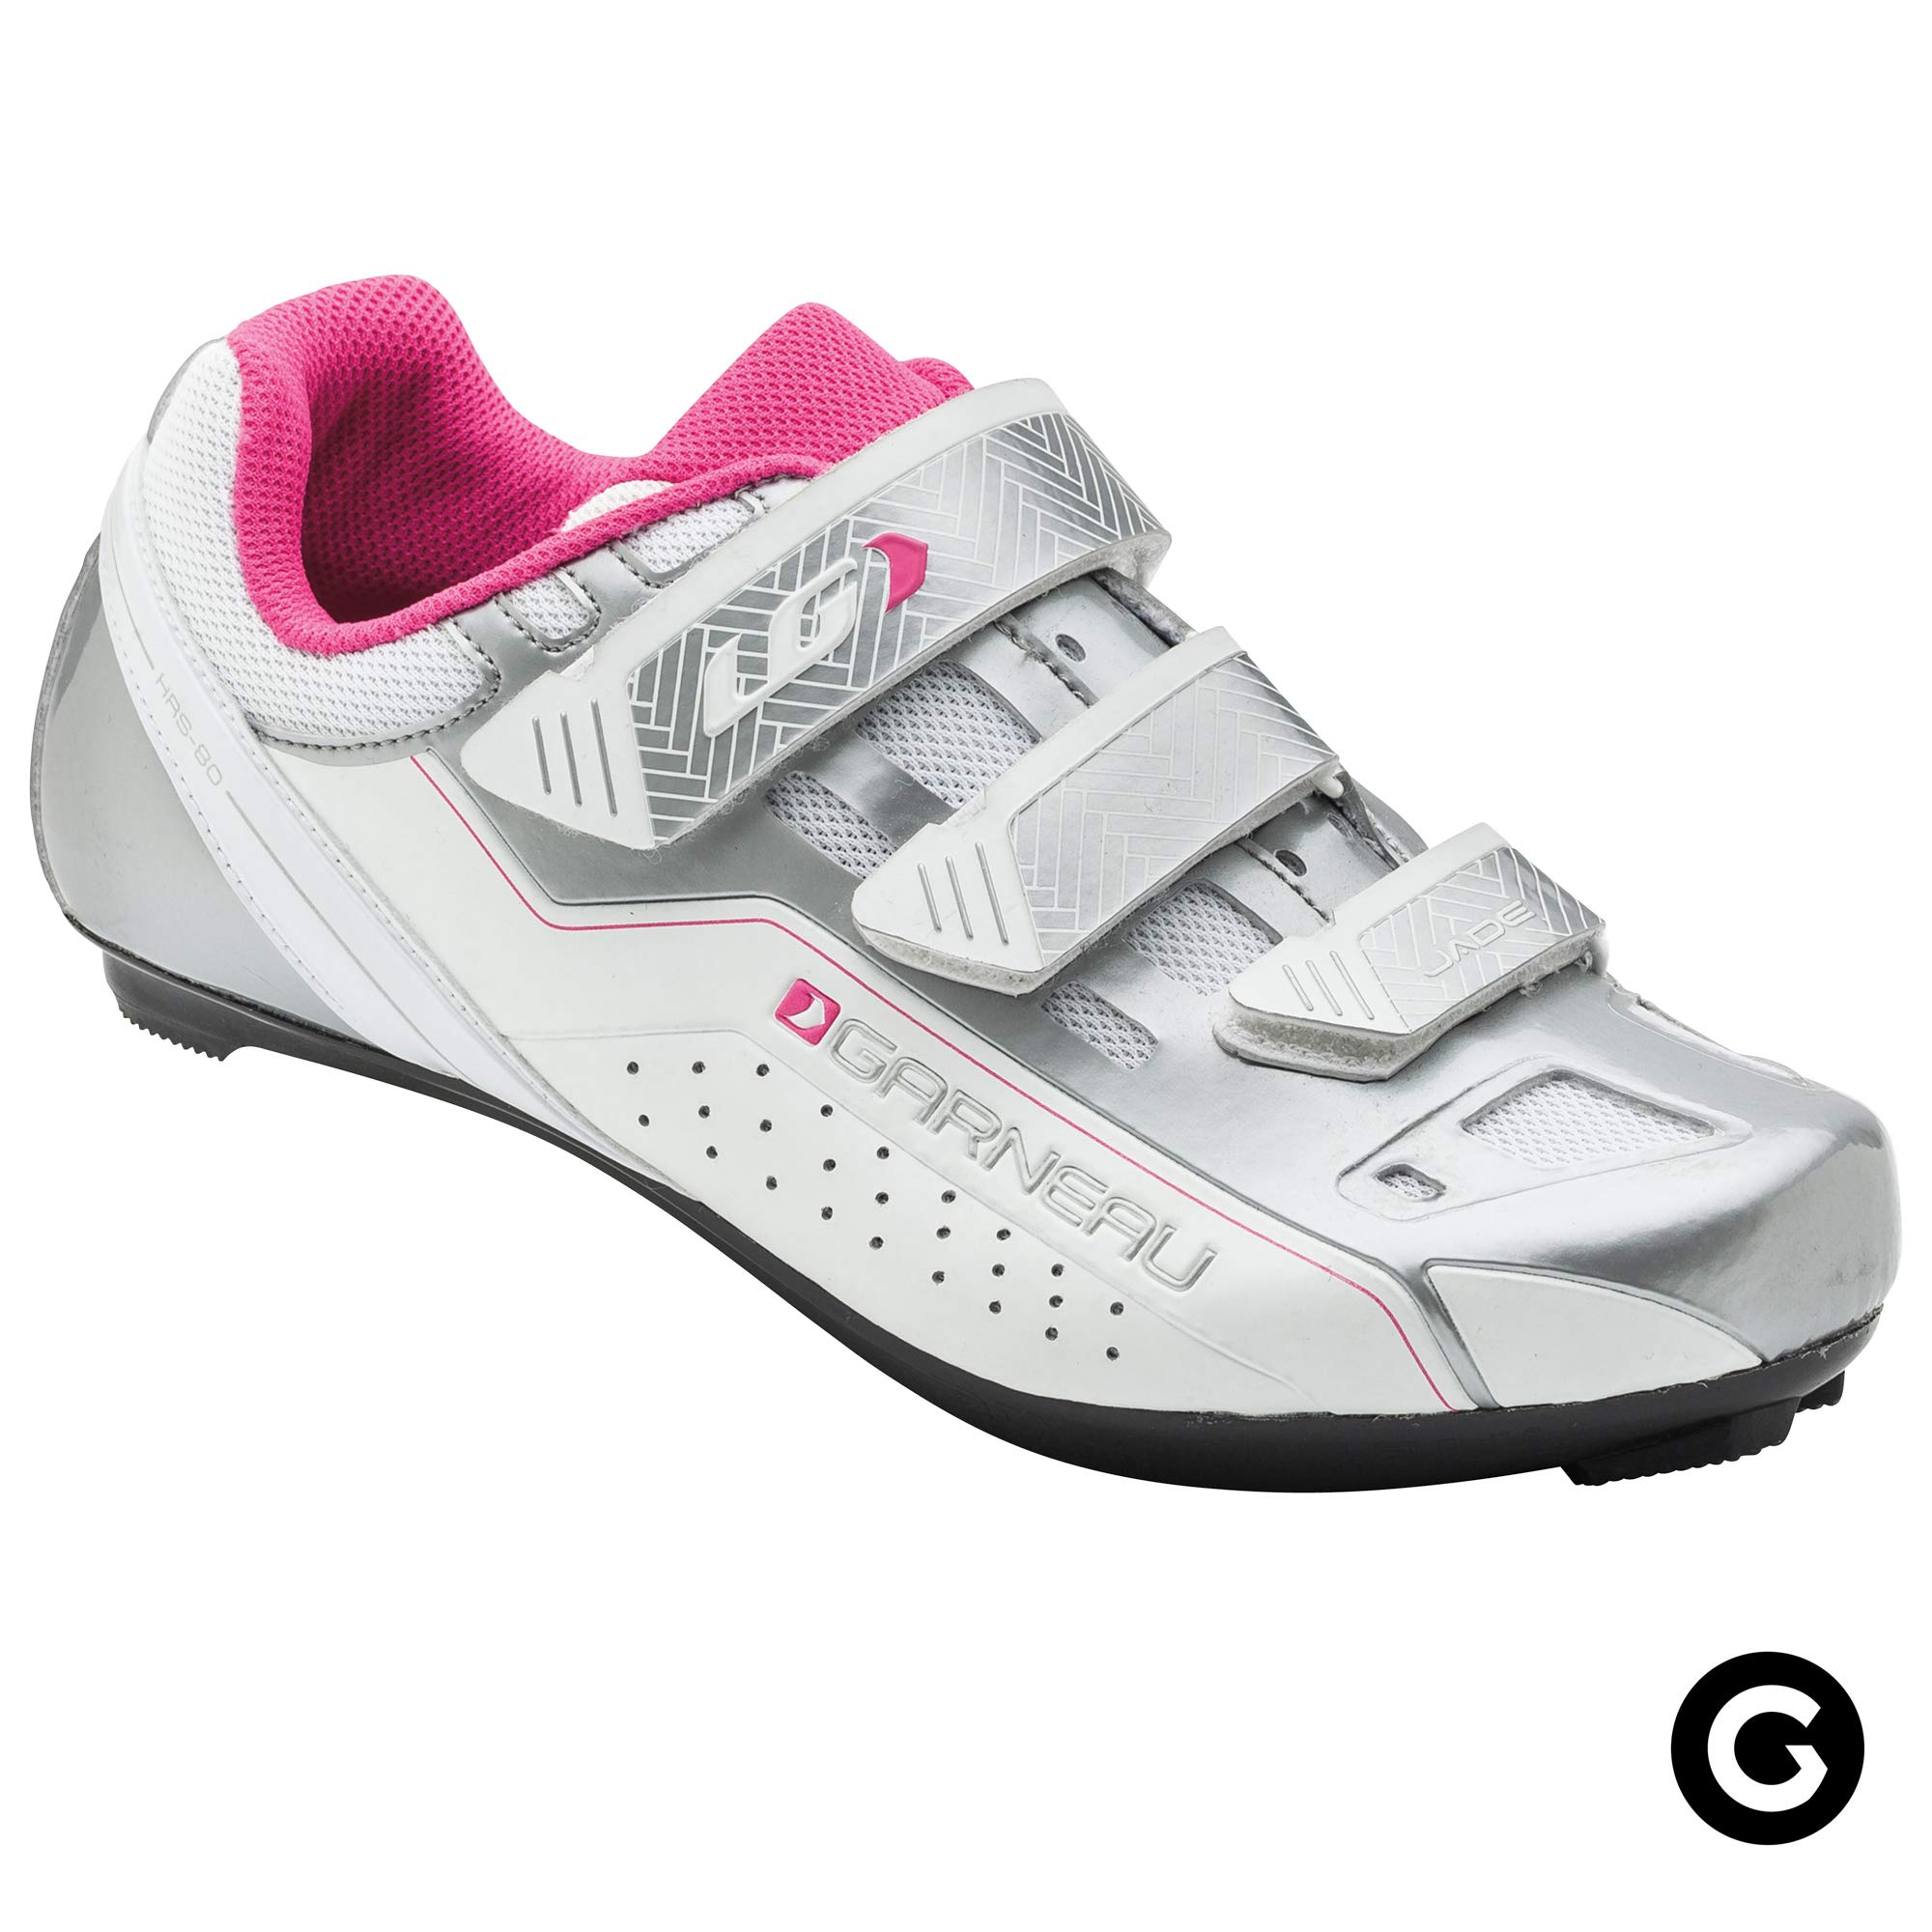 Louis Garneau Women's Jade Bike Shoes for Commuting and Indoor Cycling, Compatible with SPD, Look and All Road Pedals, Drizzle, US (11), EU (42) by Louis Garneau